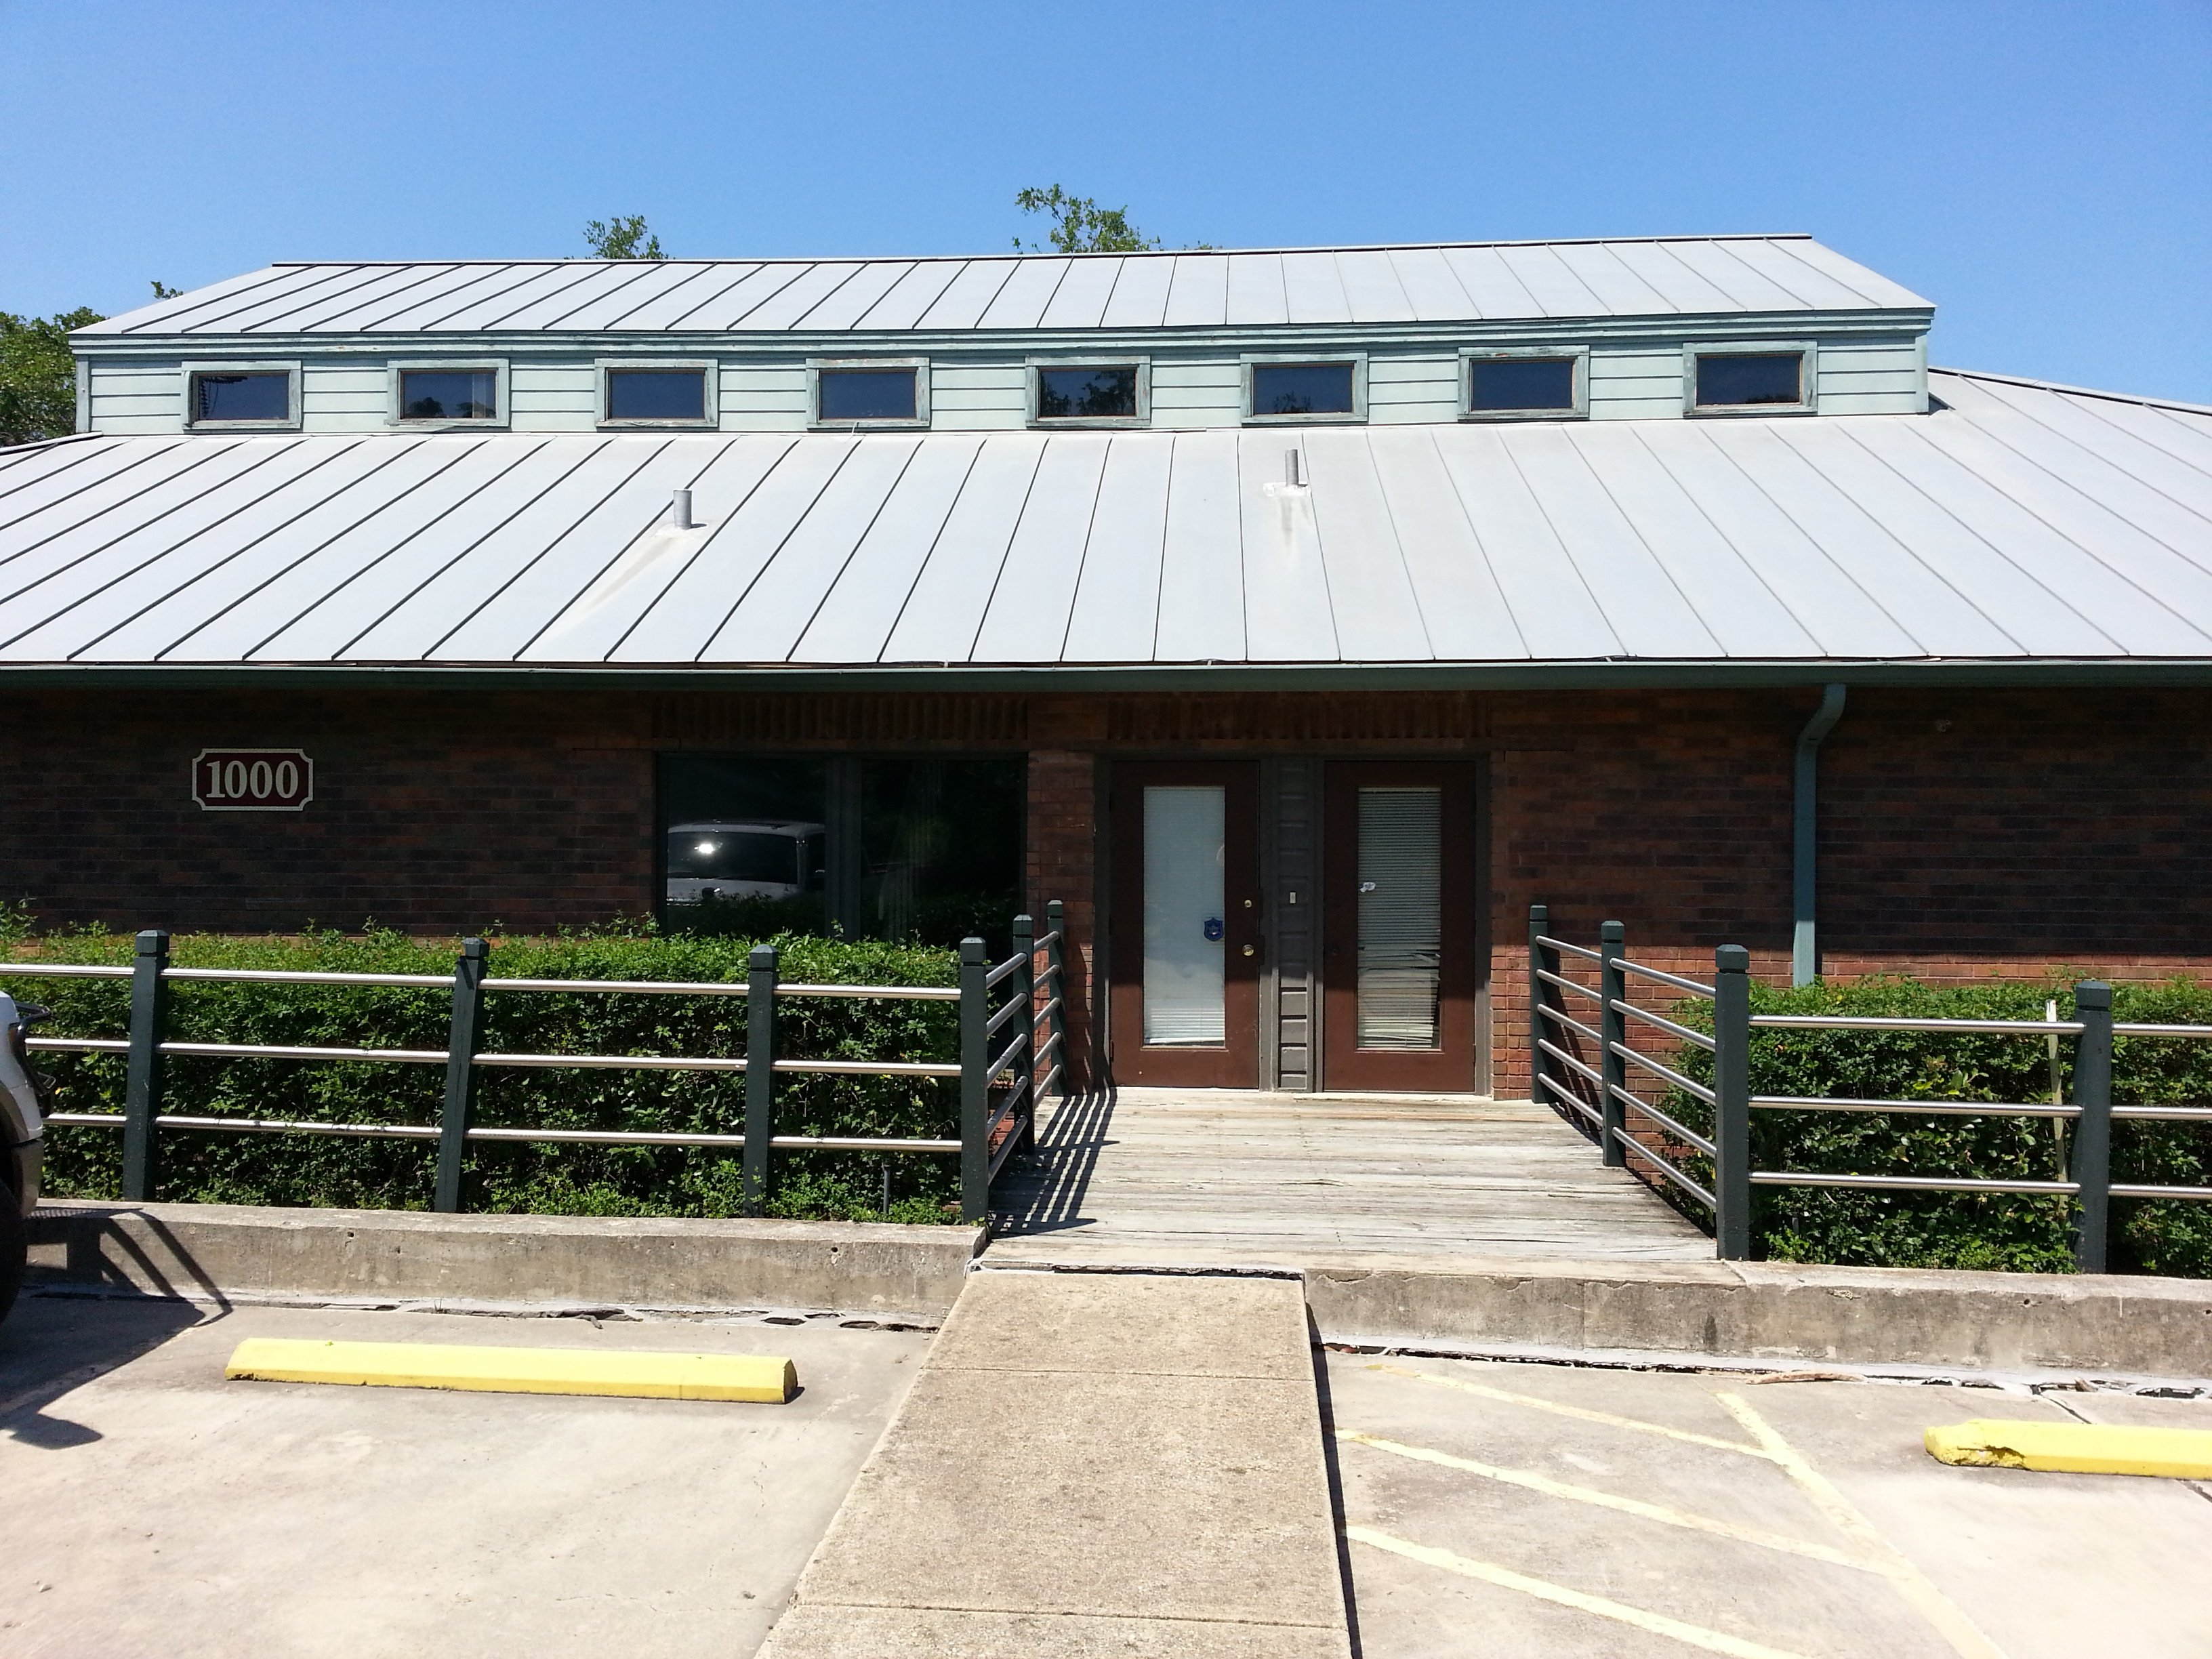 Commercial Metal Roof Austin Roofing and Construction